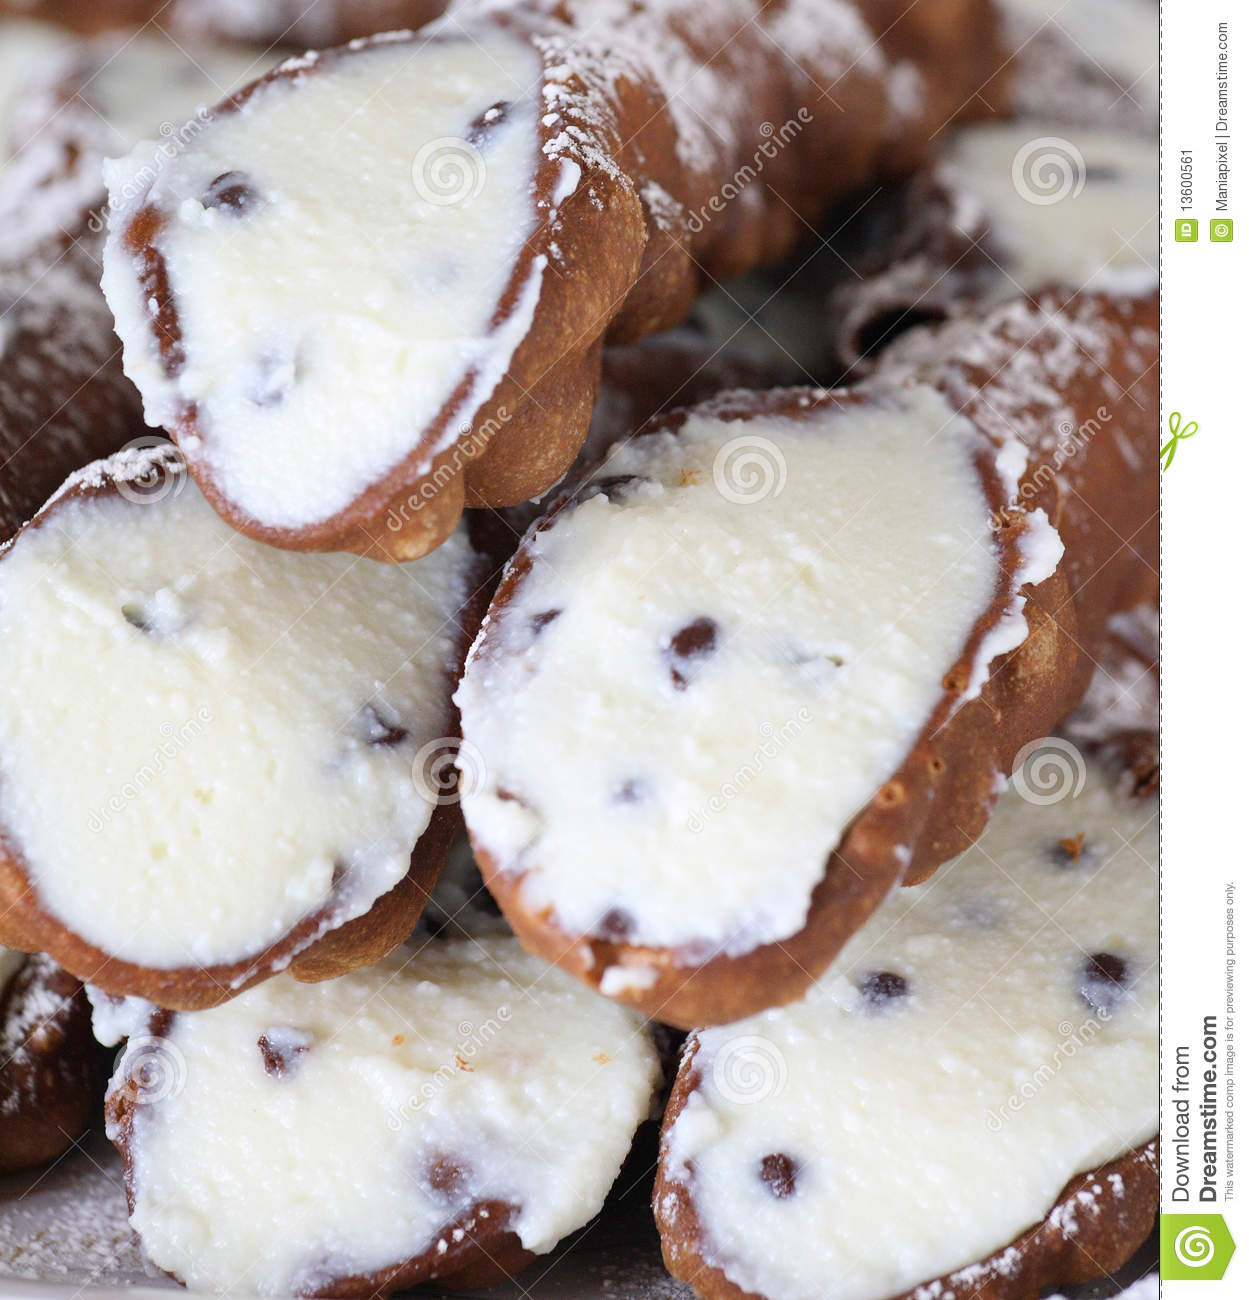 Sicilian cannoli filled with ricotta and chocolate chips.